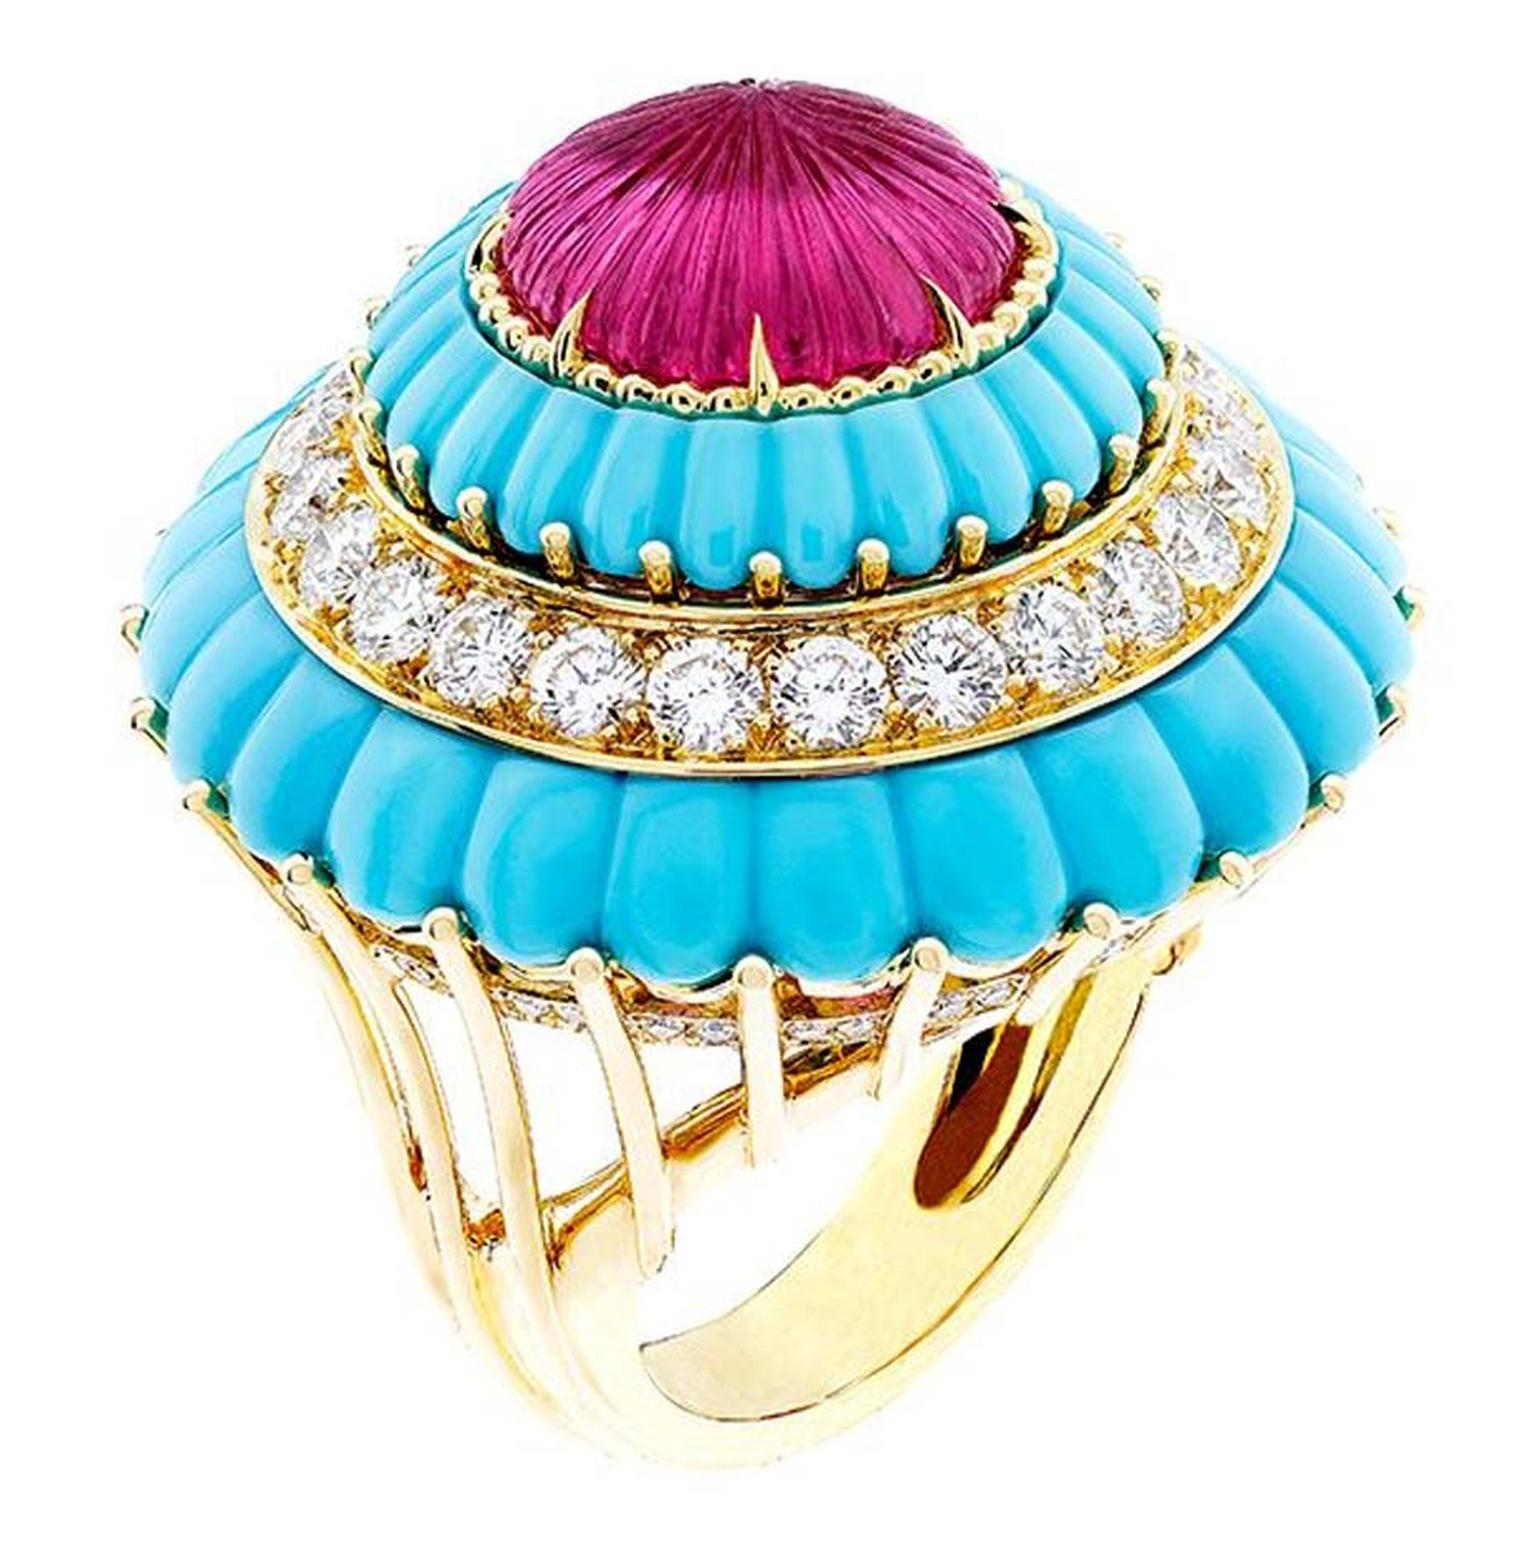 Van Cleef & Arpels Lady's Cocktail Ring in yellow gold, with round diamonds, carved rubellite and turquoise